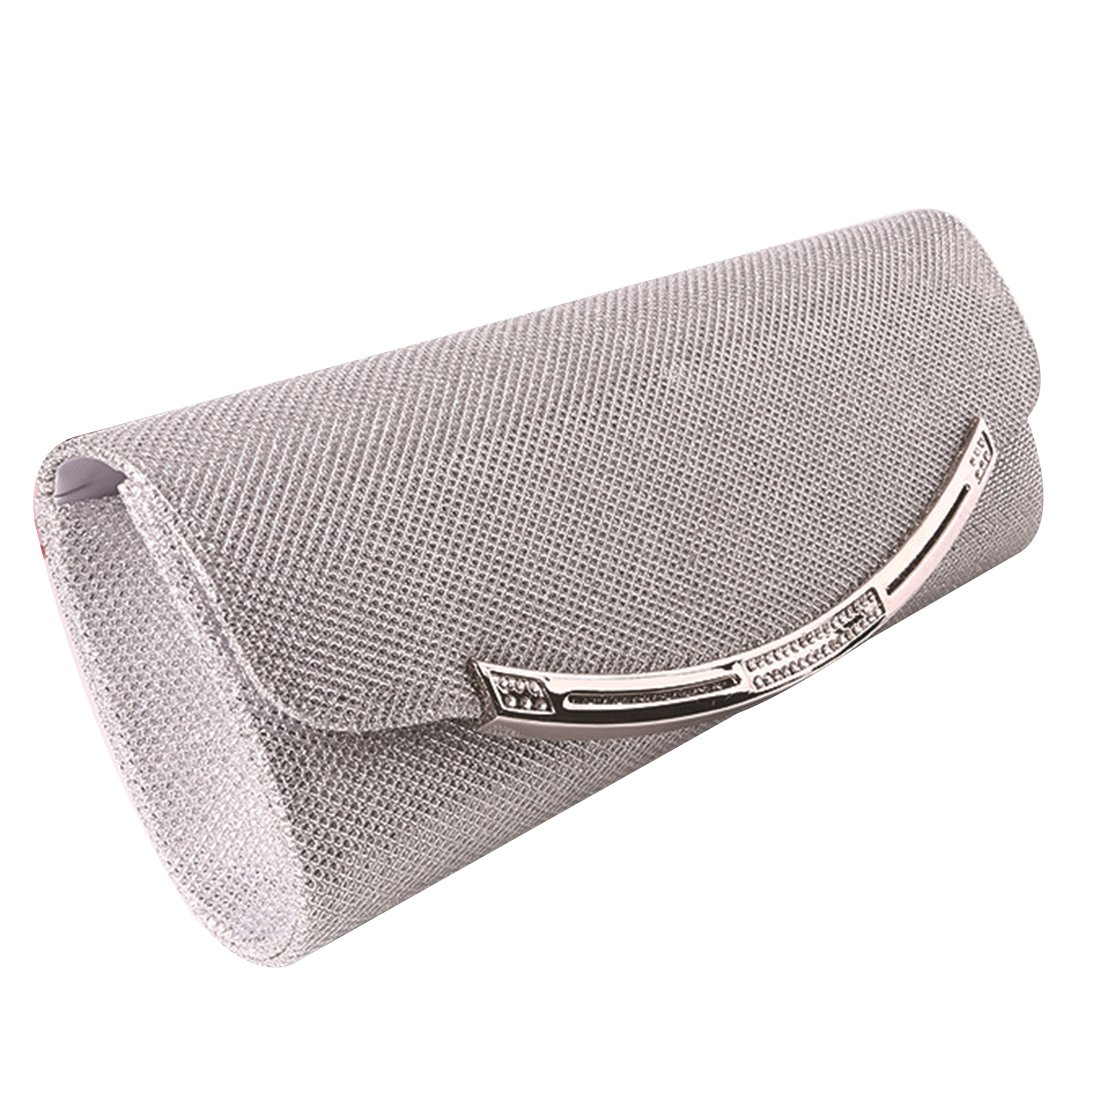 22aa281120a19 Elegant Womens Envelope Clutch Bag Ladies Shoulder Evening Prom Handbag  Party Bag for Wedding Daily Use (Silver)  Amazon.co.uk  Clothing